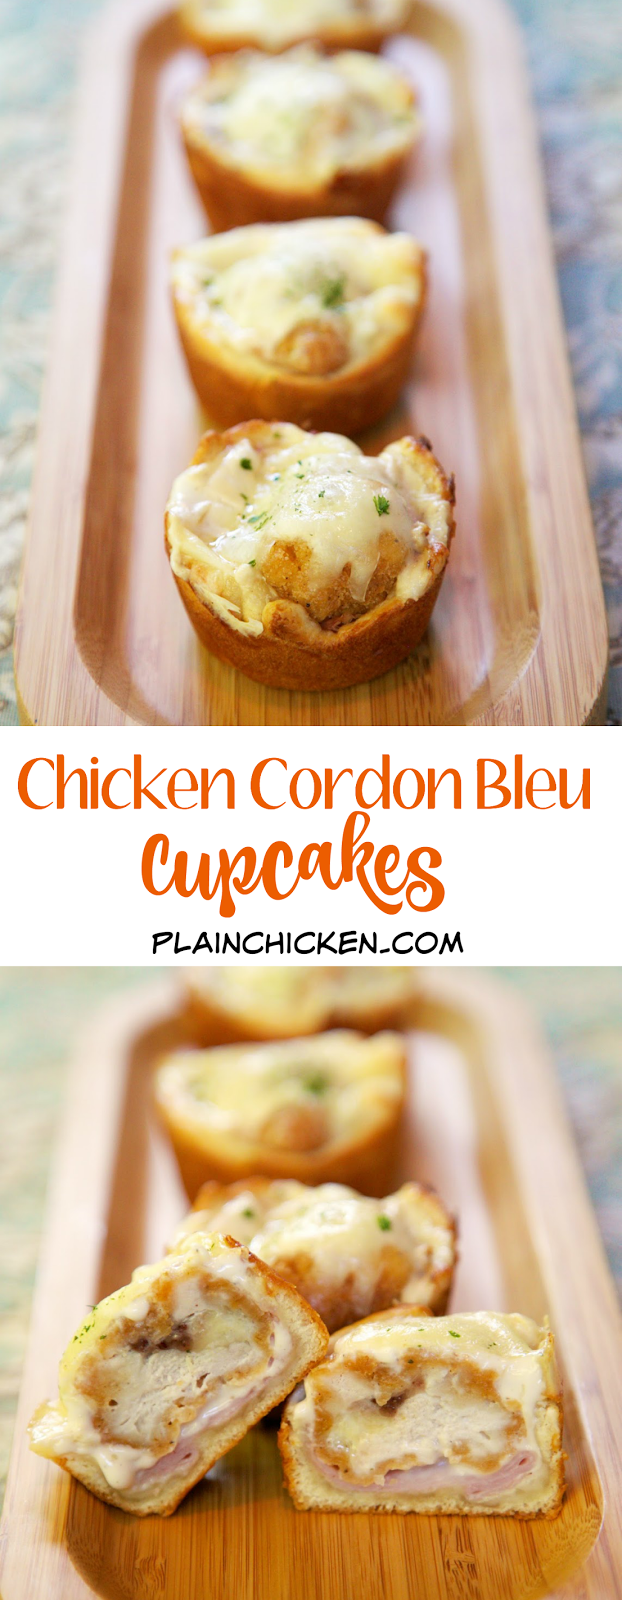 Chicken Cordon Bleu Cupcakes - frozen popcorn chicken, ham, alfredo sauce, swiss cheese baked in crescent cups! Only 5 ingredients and ready in under 20 minutes! These are great for a quick lunch, dinner or even a party! We love these!! Kids (and adults) gobble these up!